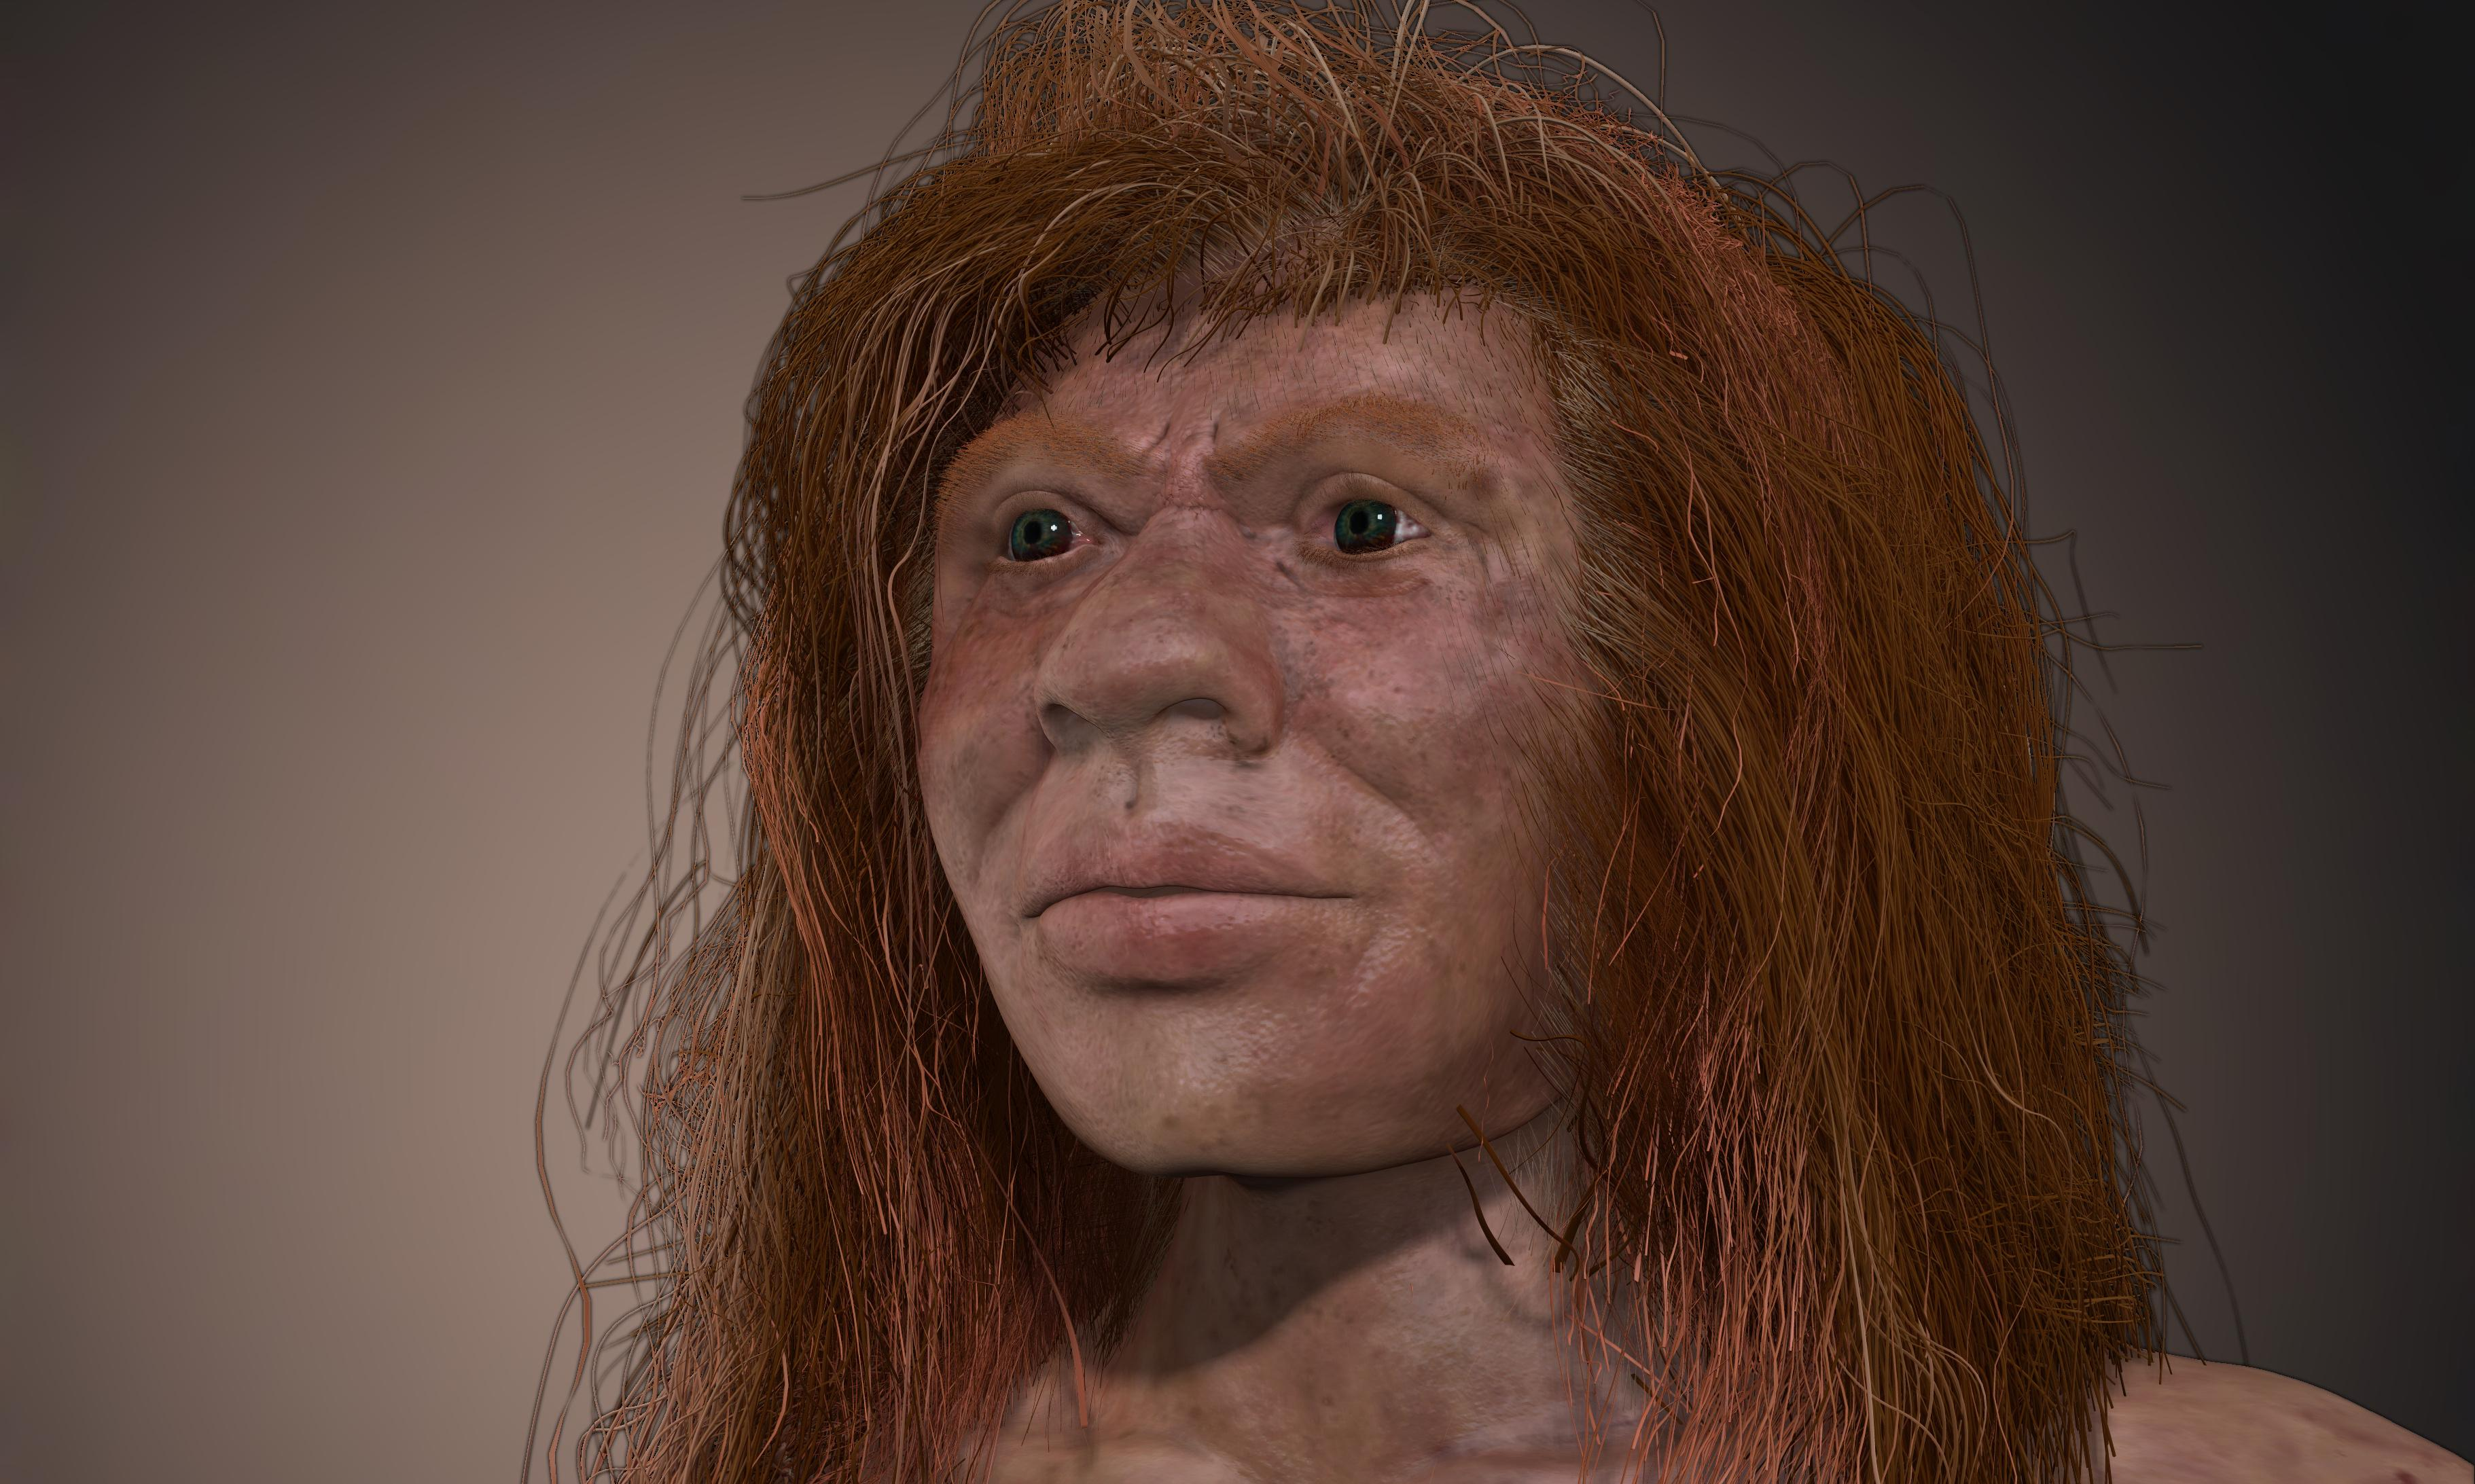 Meet Denny, the ancient mixed-heritage mystery girl